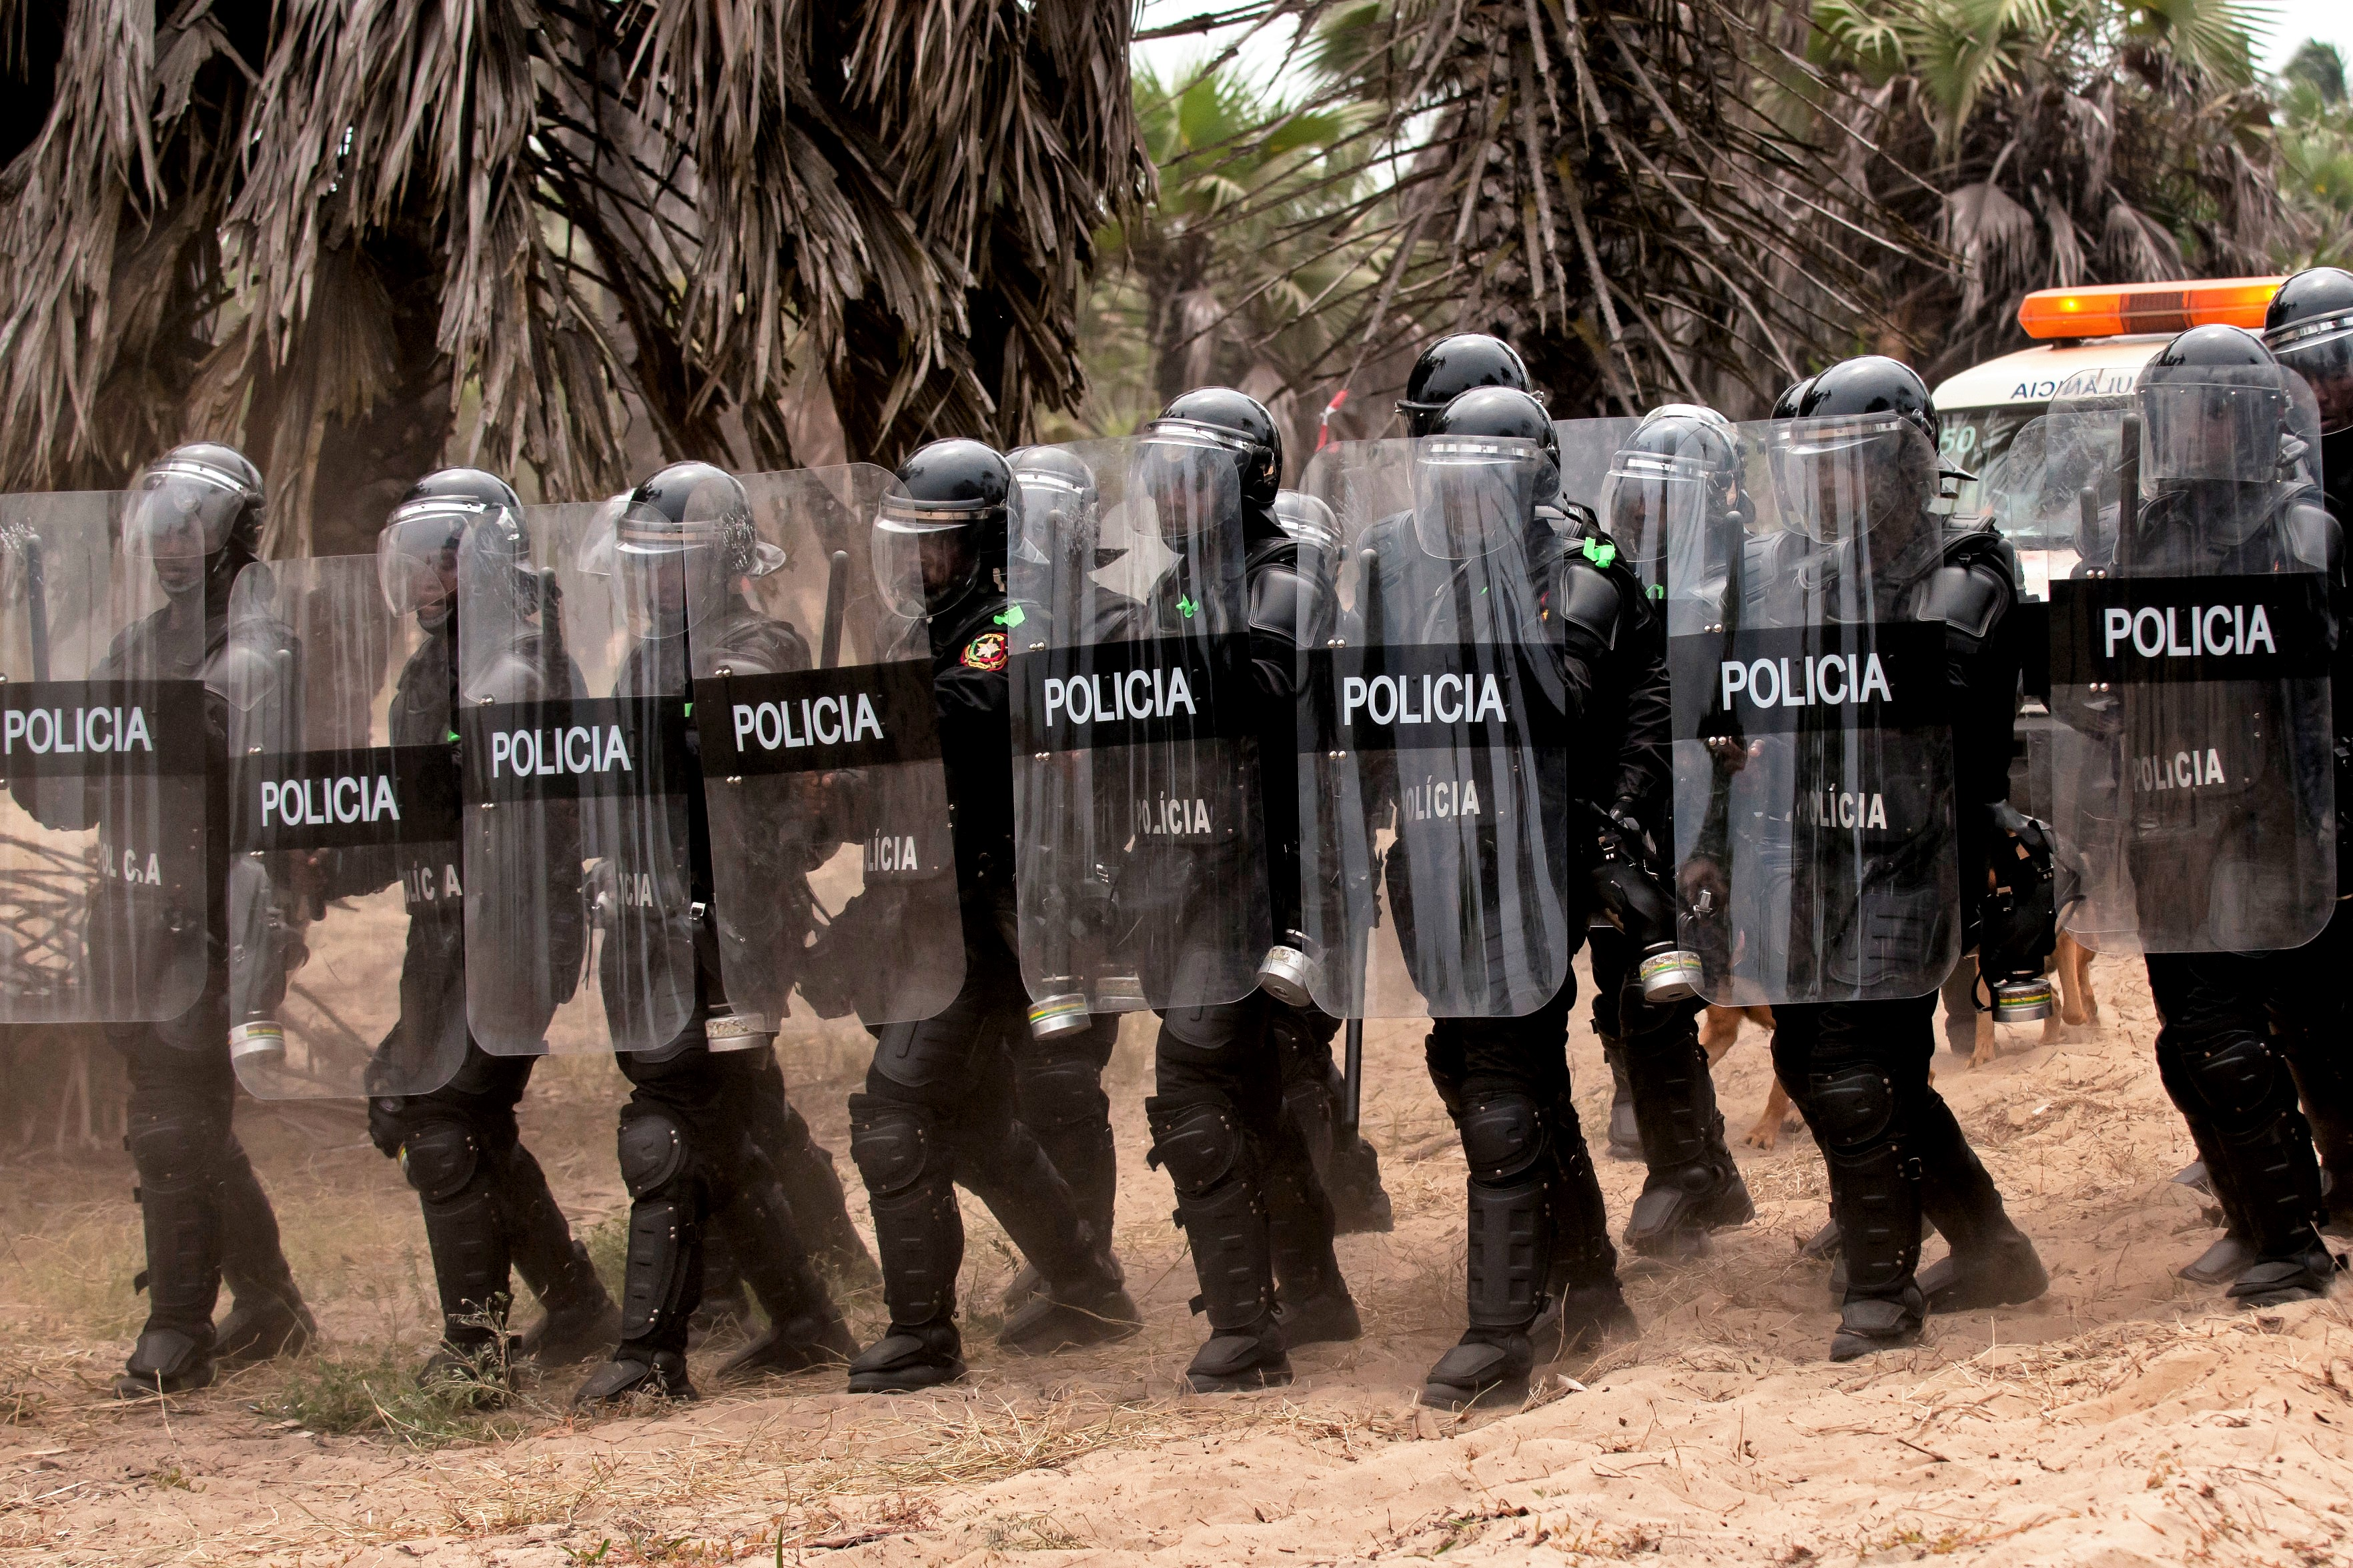 Members of the Angolan police forces demonstrate a response to a riot situation during a simulated epidemic infectious disease outbreak during the VIP day and closing ceremony for PAMBALA 2017, Dec. 14, 2017, in Bengo Province, Angola. Highlights of the event included a demonstration of an infectious disease crisis response by the Angolan police and firefighting units, the Angolan Armed Forces and some of the Serbian and Ohio National Guard personnel. (Ohio National Guard photo by Staff Sgt. Wendy Kuhn)